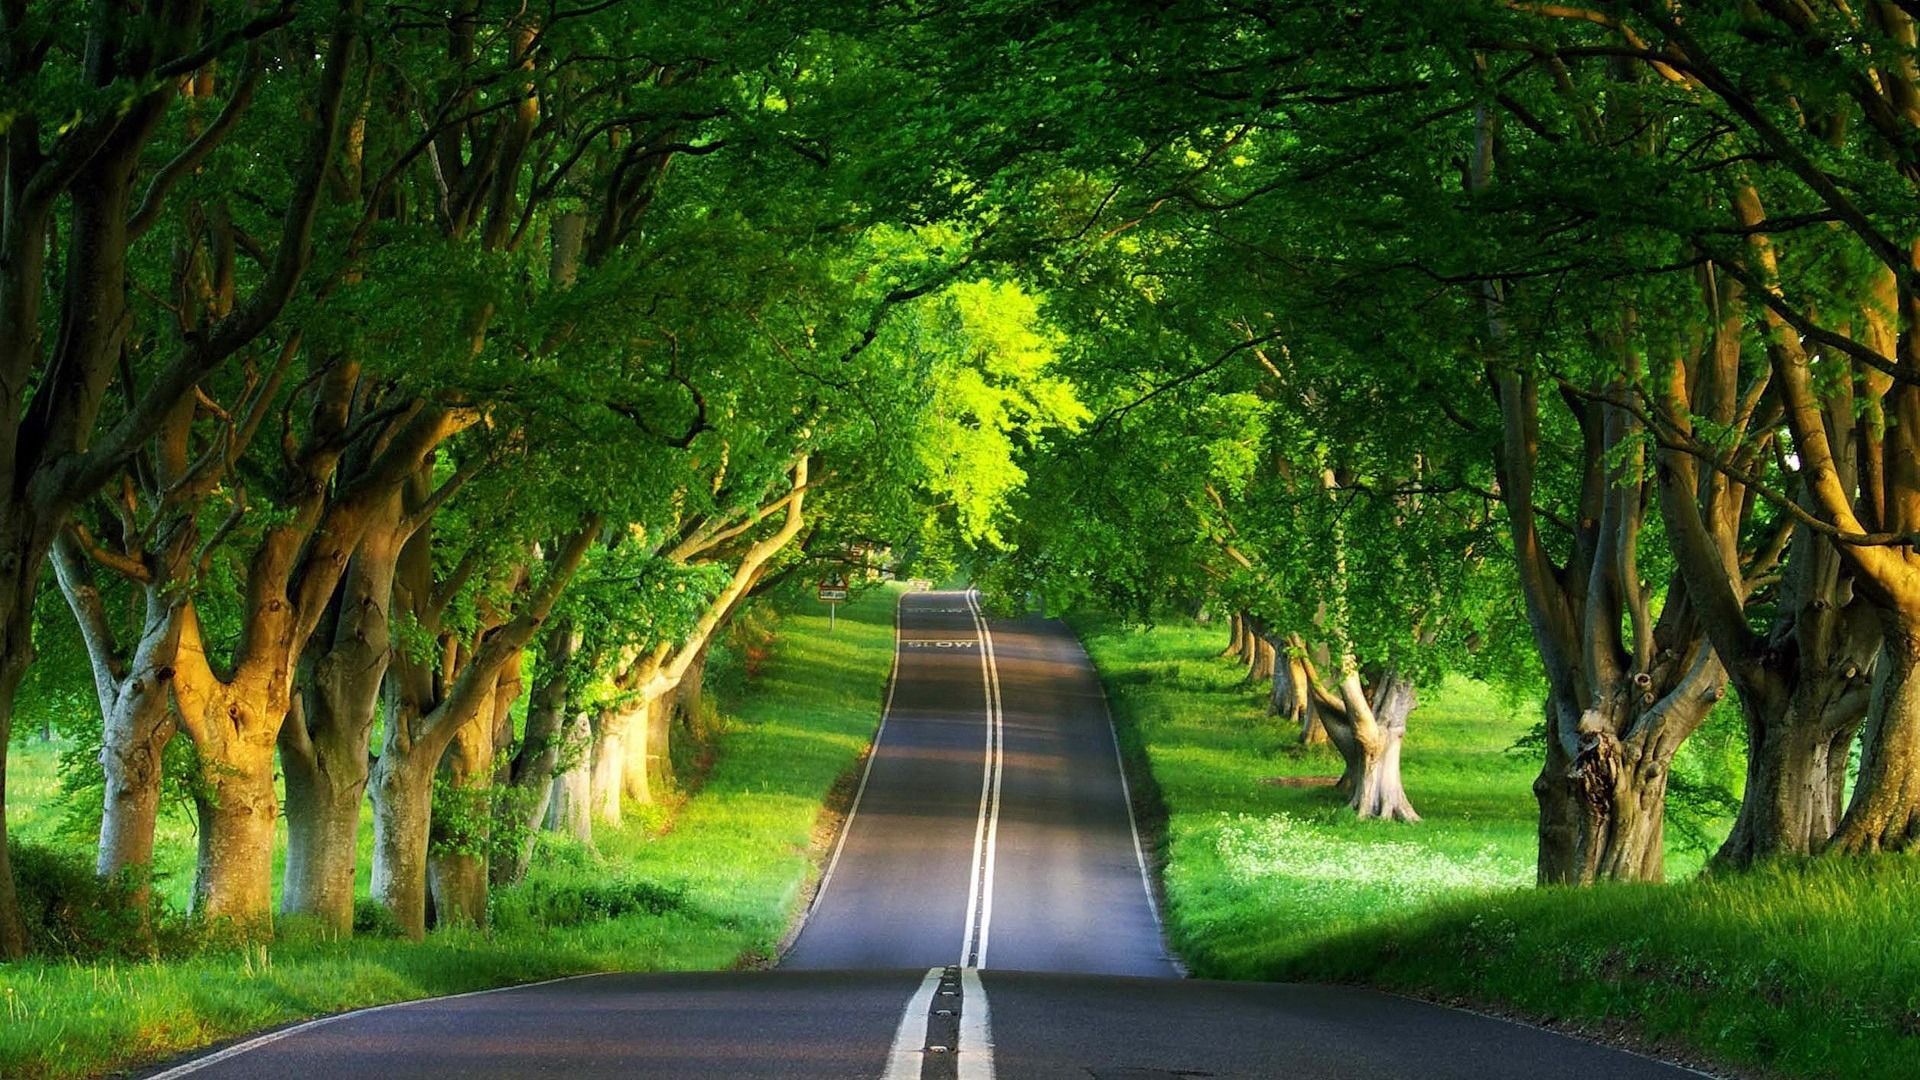 Road Under The Trees Wallpaper Nature Desktop Wallpaper Hd Nature Wallpapers Nature Desktop